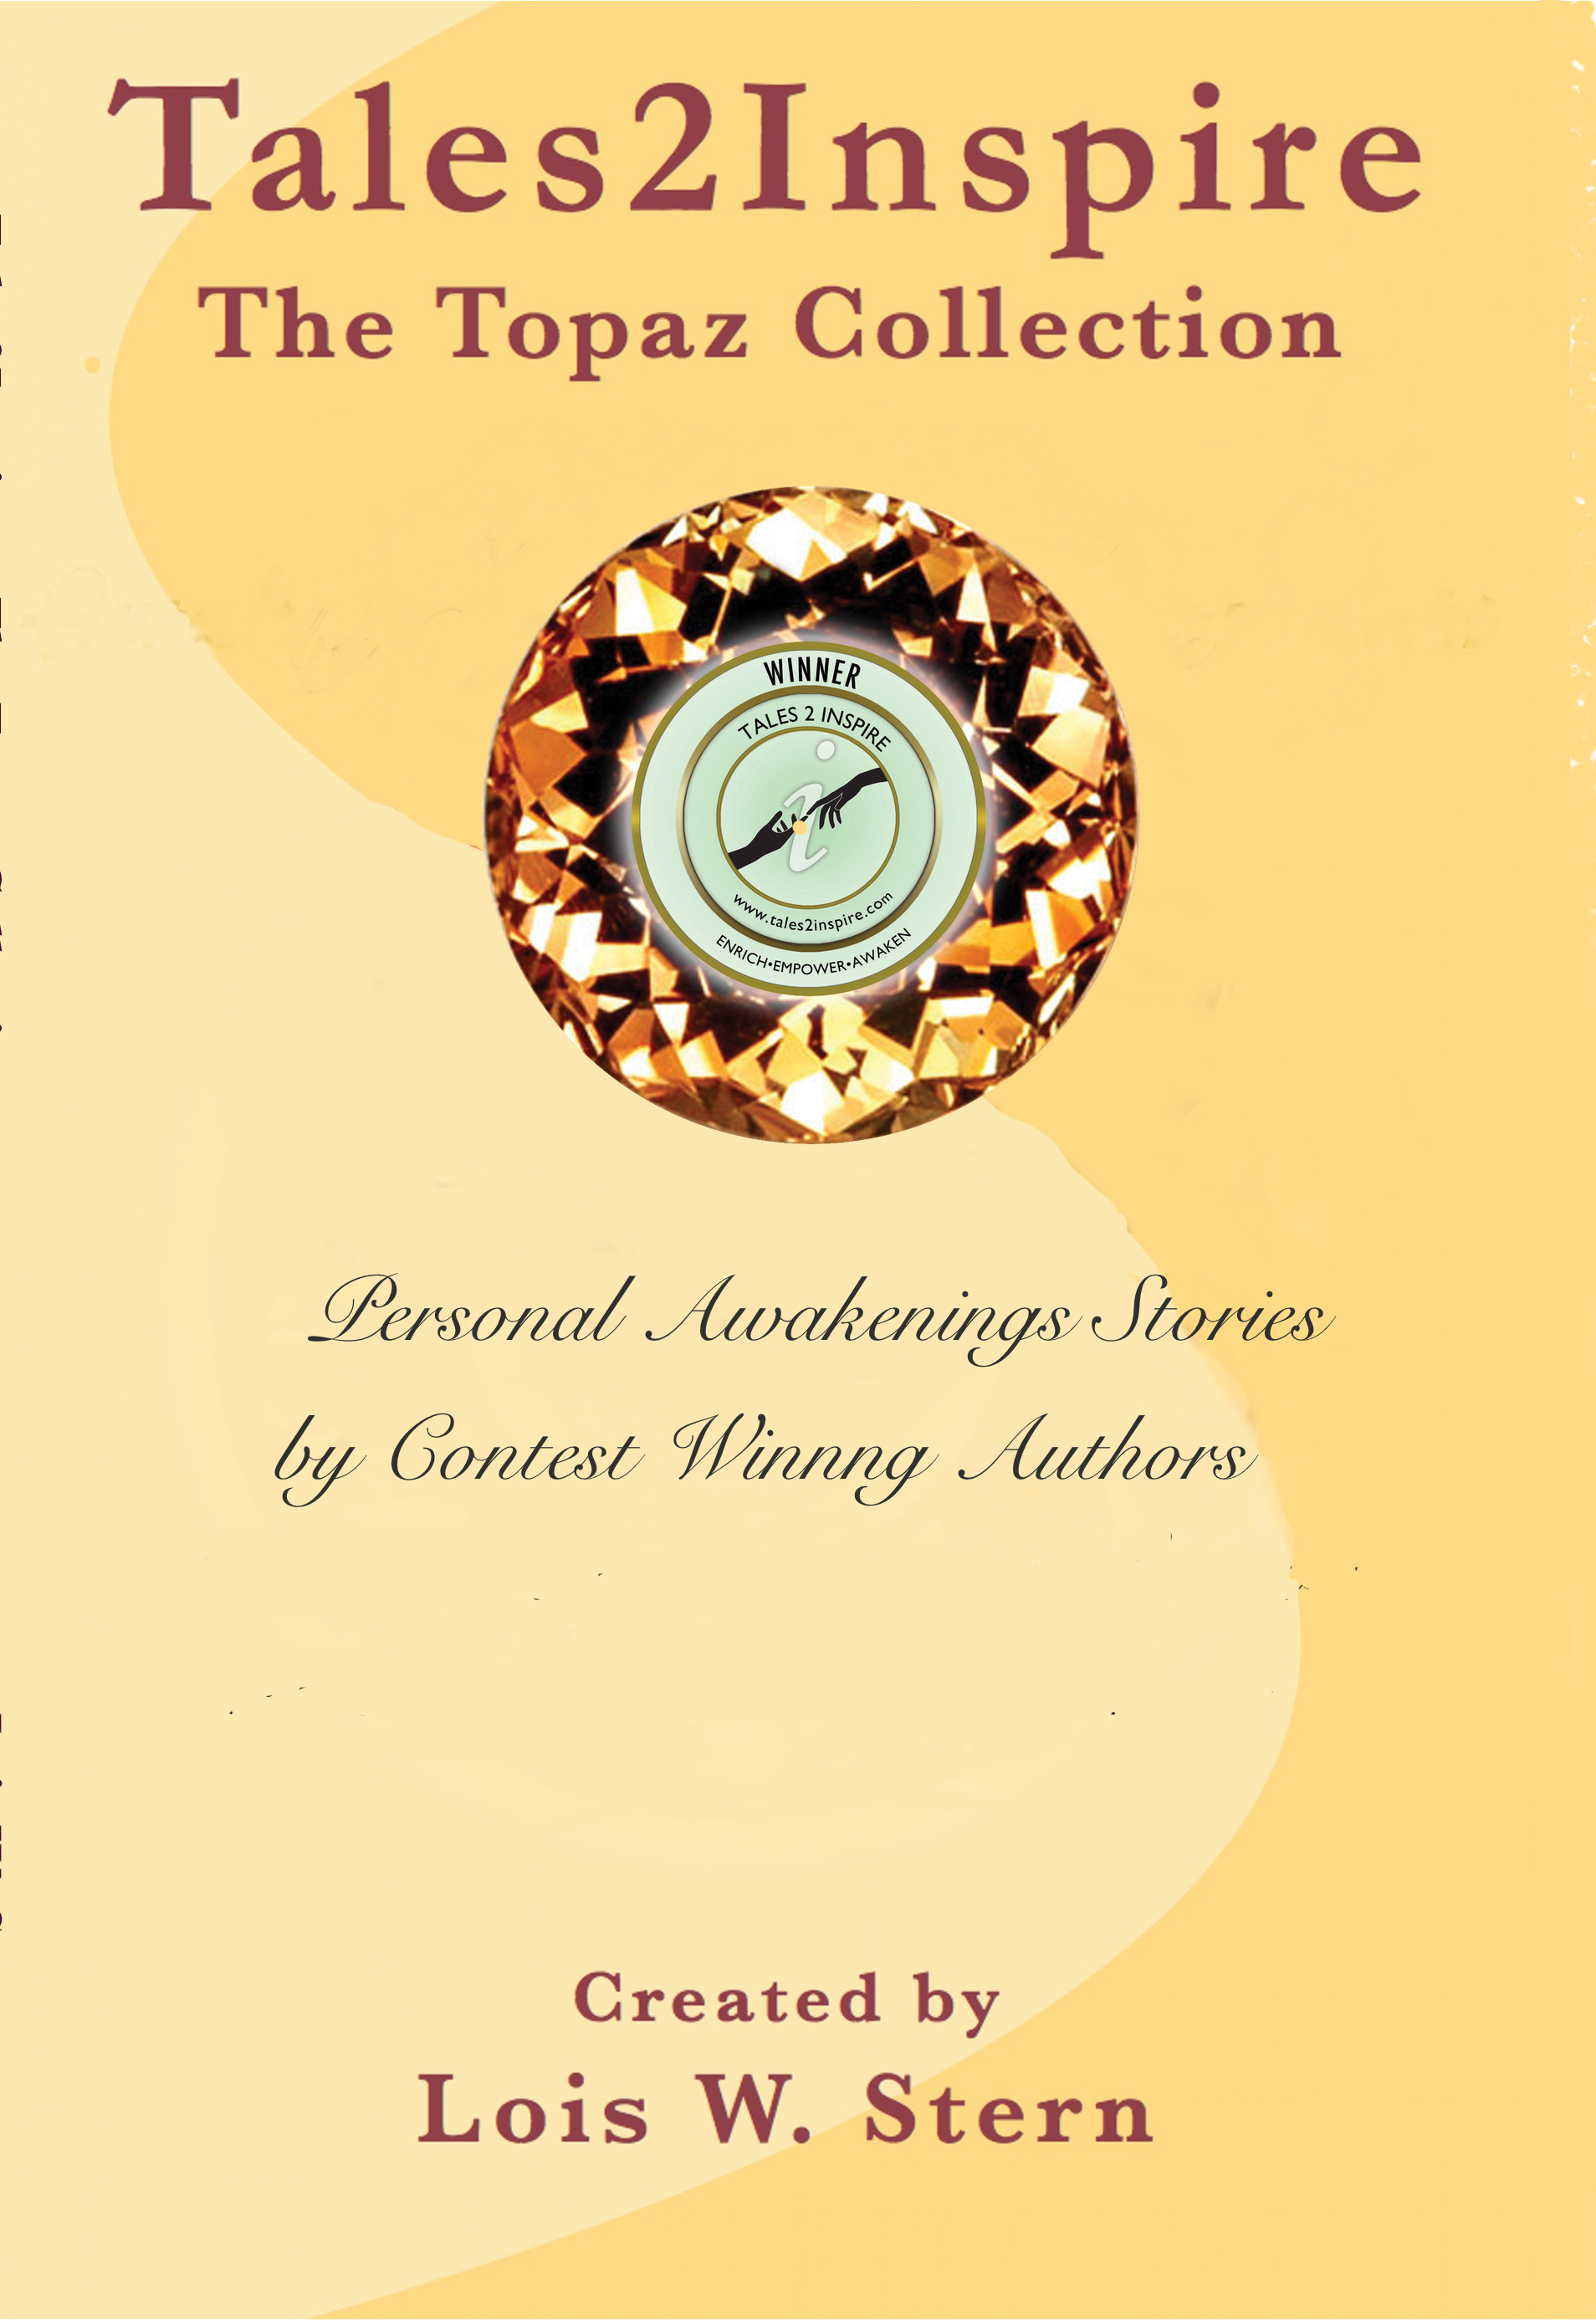 The Topaz Collection of Personal Awakenings Stories